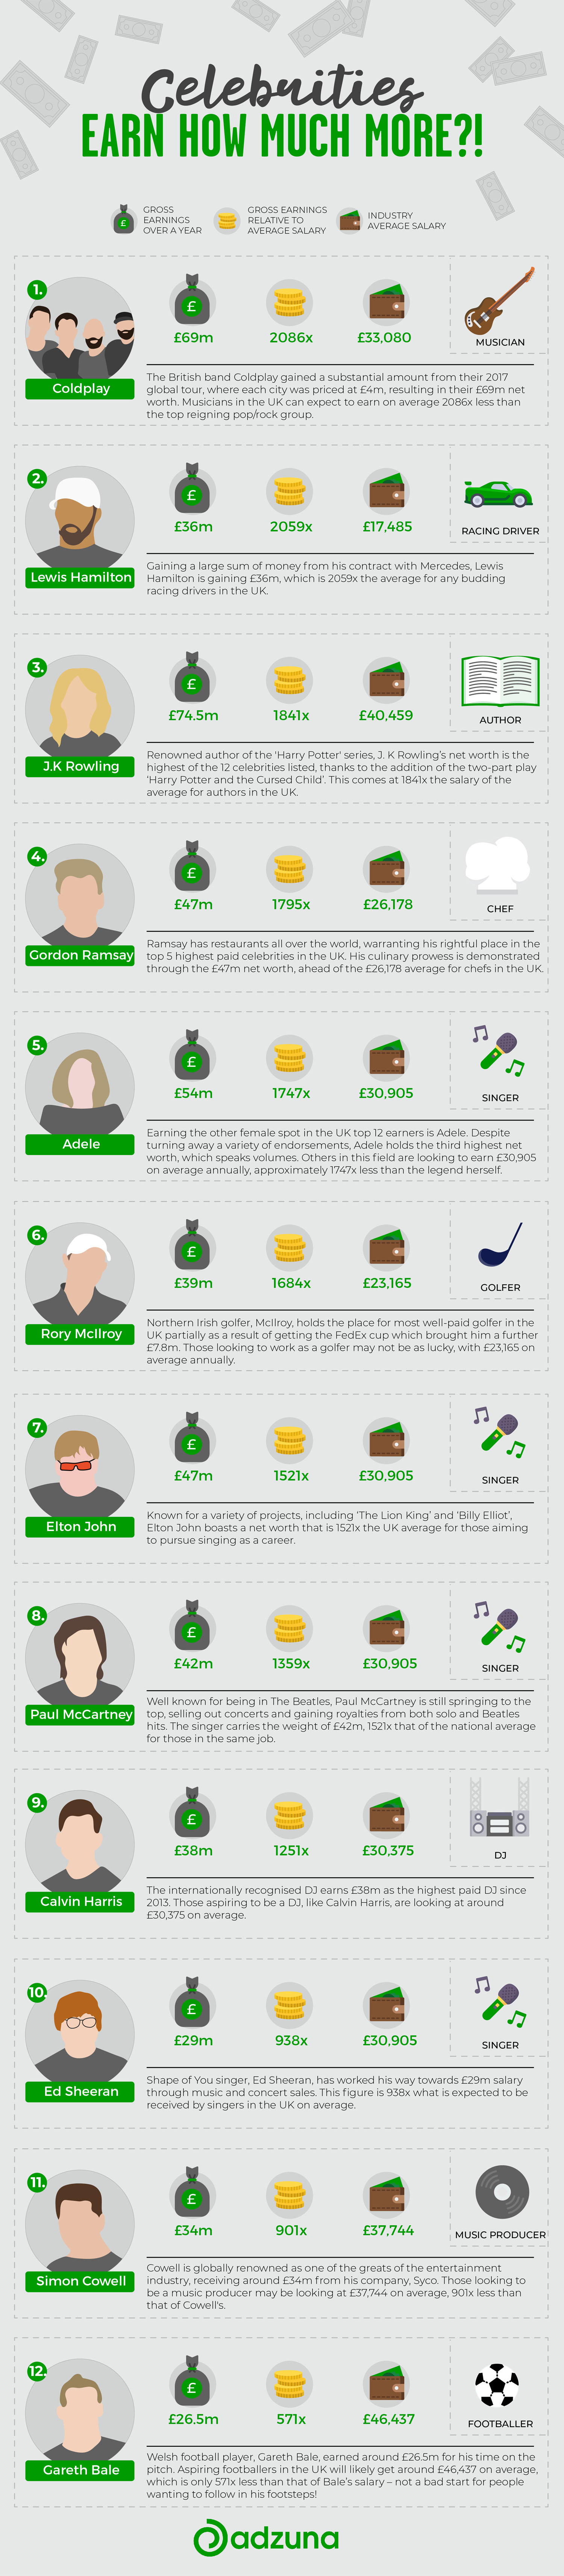 Celebrities Earn How Much More?!